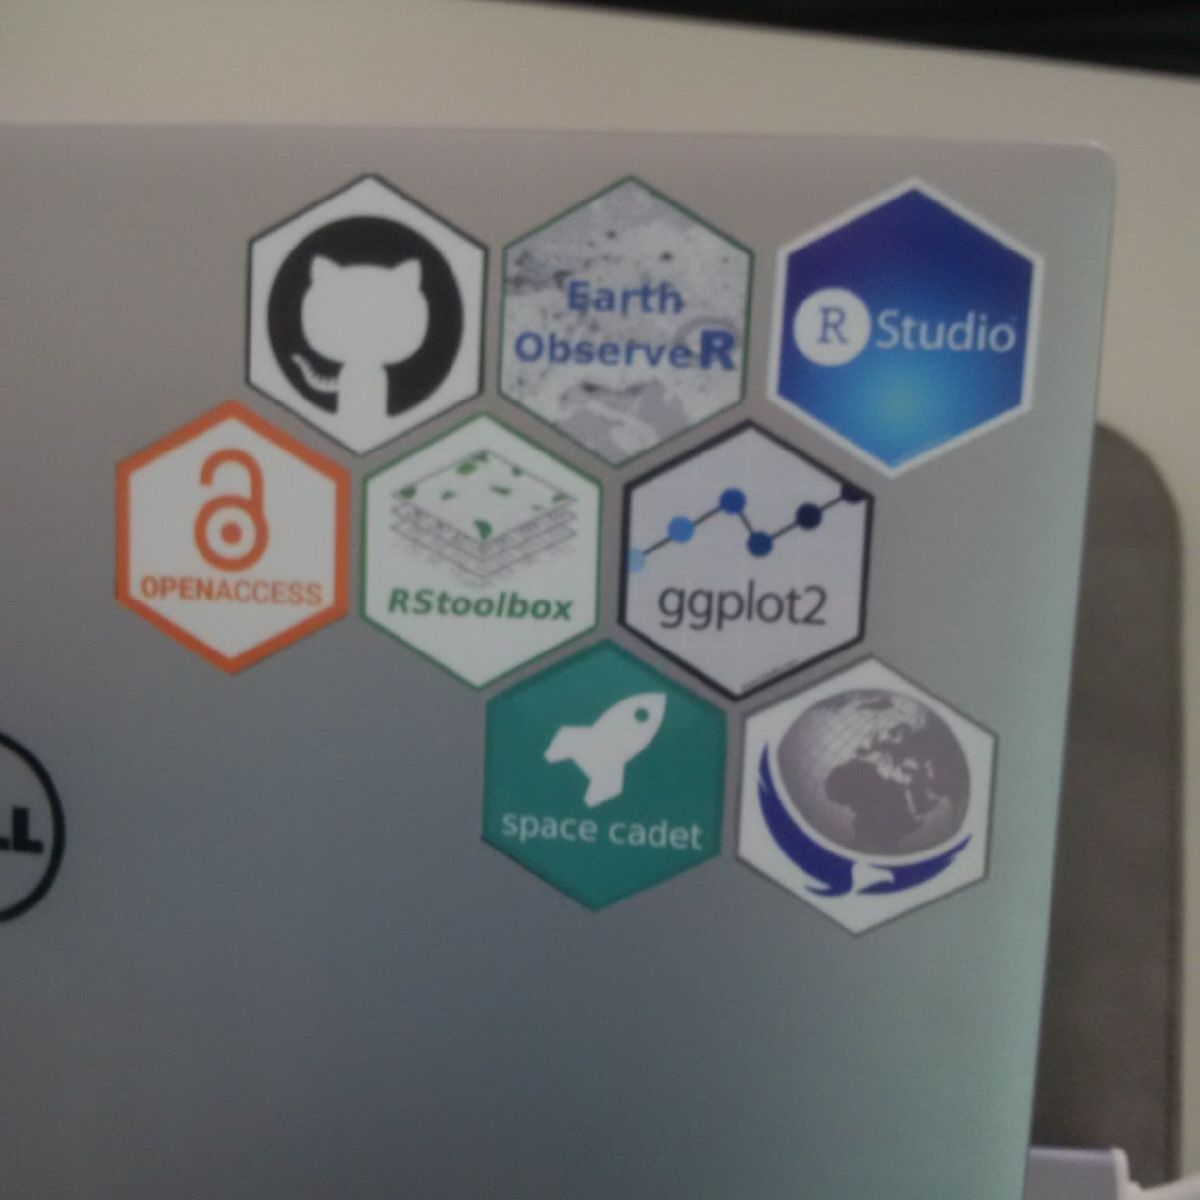 first EAGLE Msc hexagon stickers seen on laptops - fits